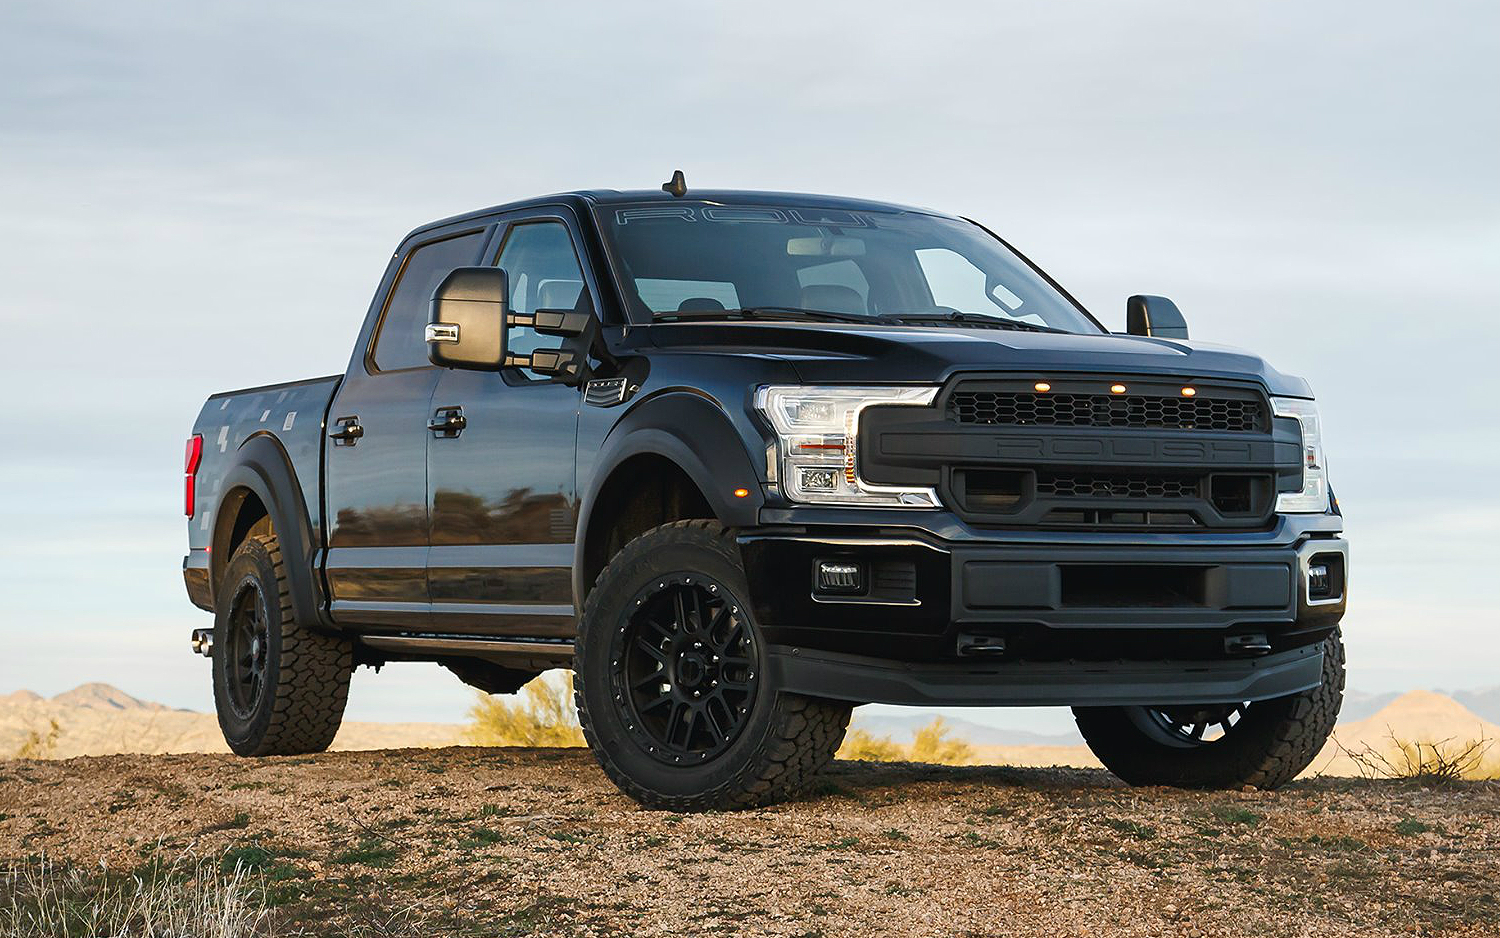 2020 ROUSH F-150 5.11 Tactical Edition